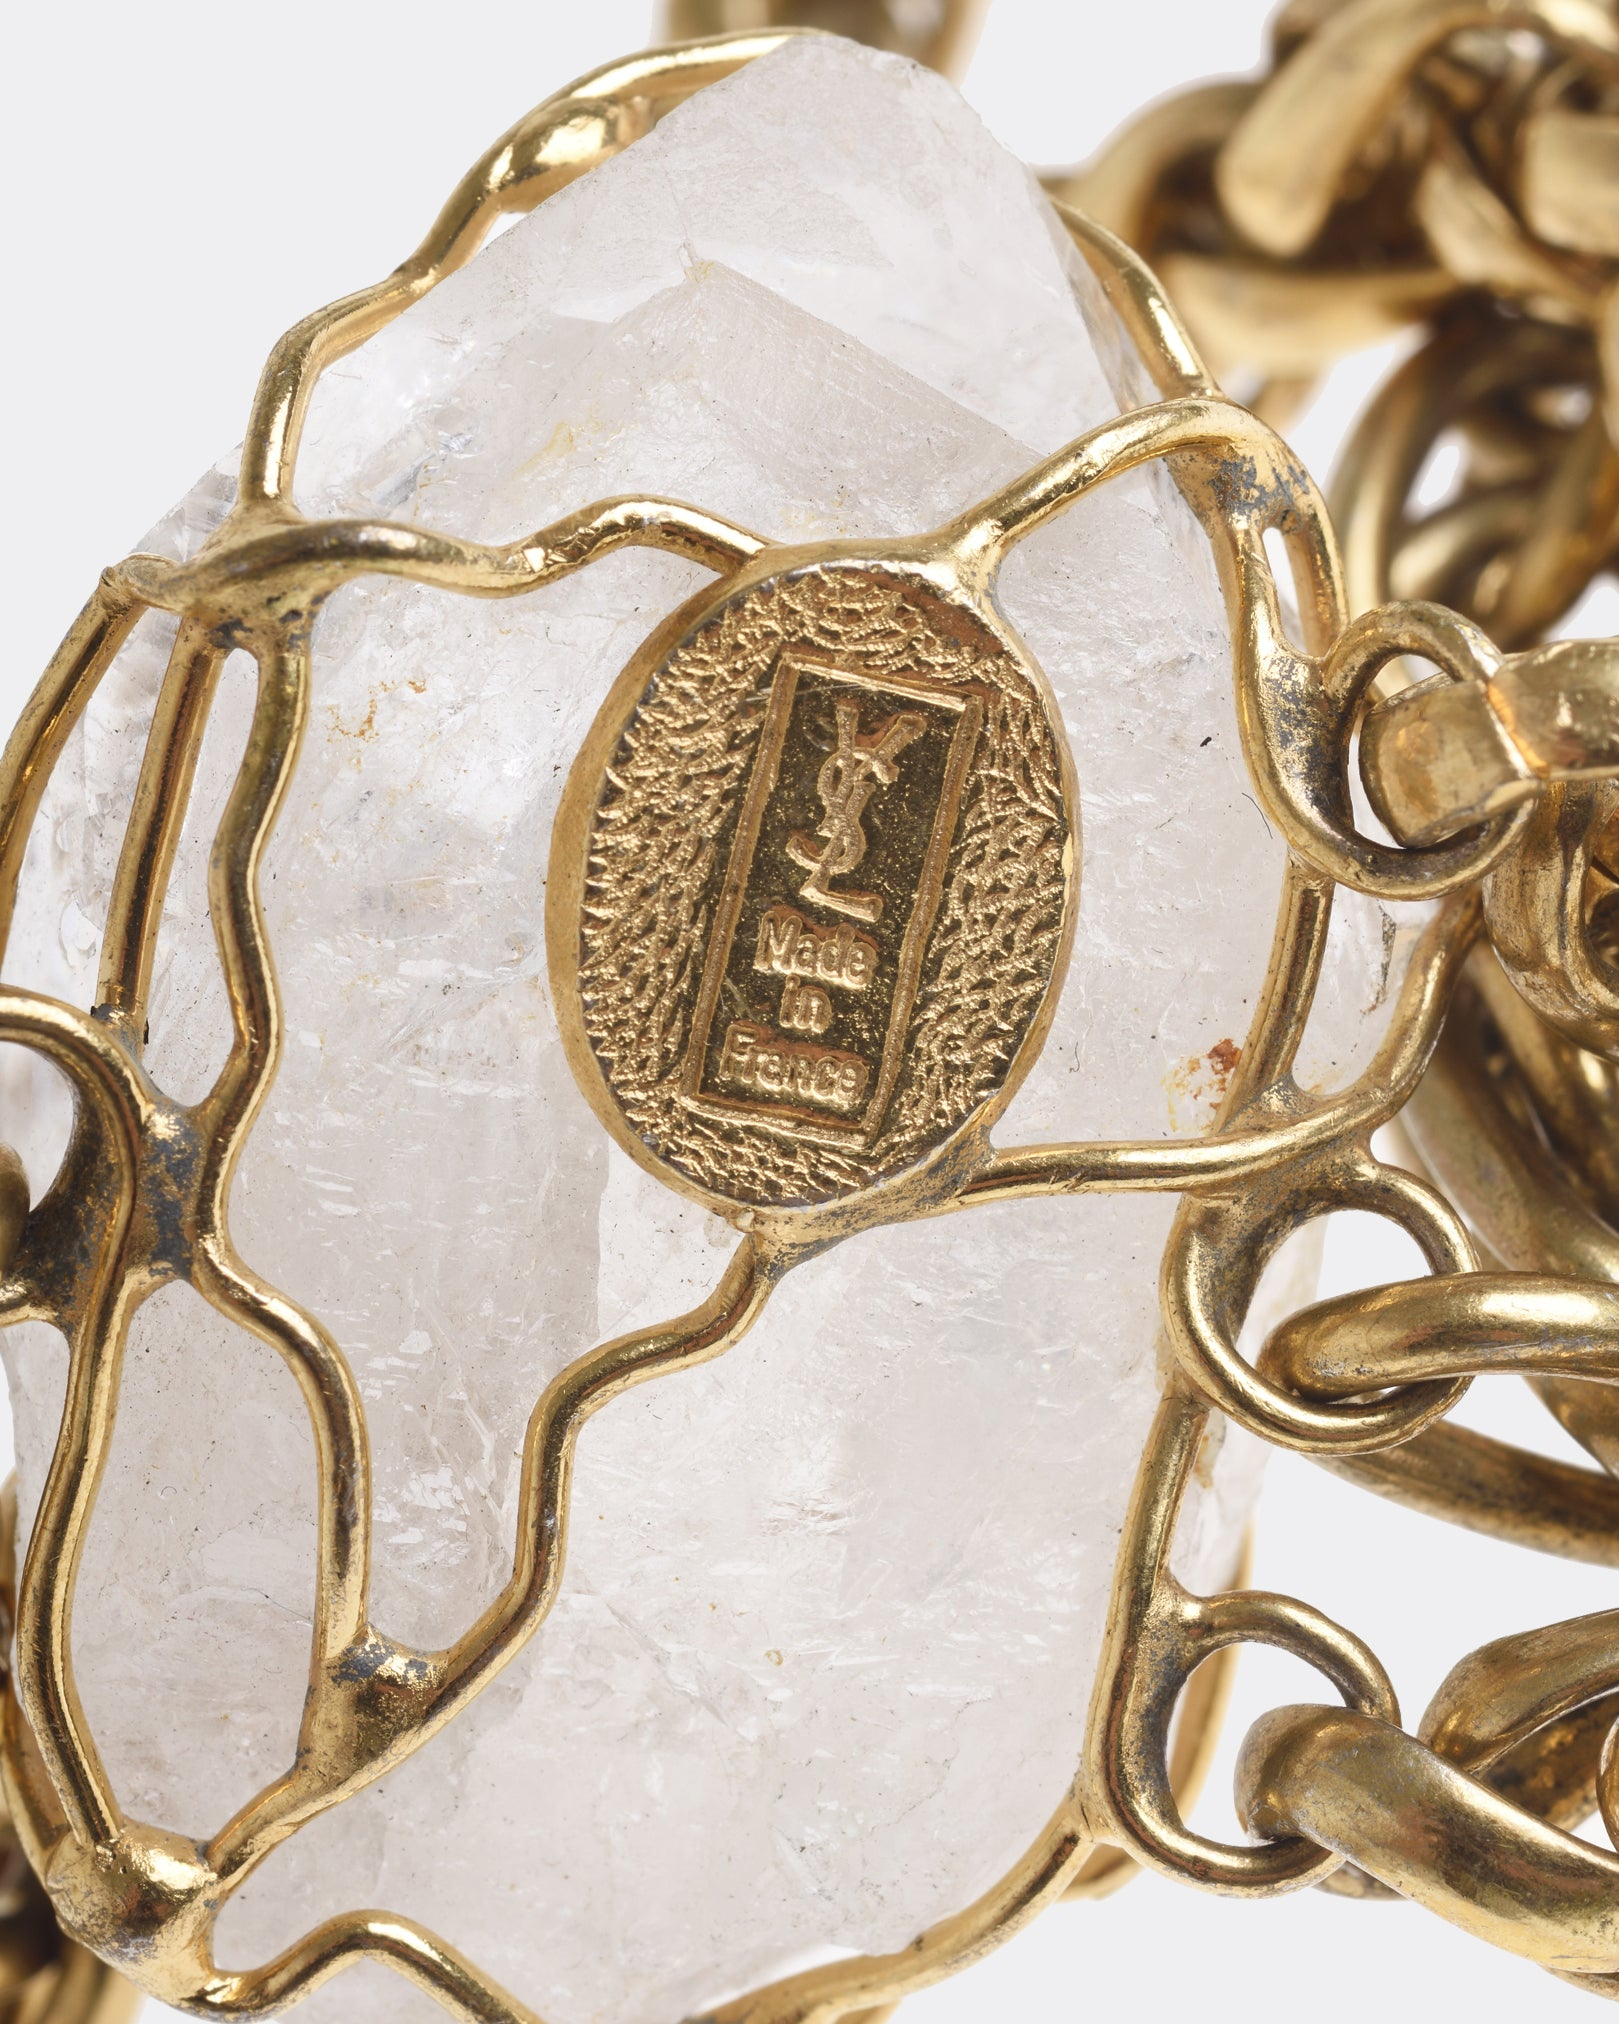 YVES SAINT LAURENT Quartz Pendant Golden Belt